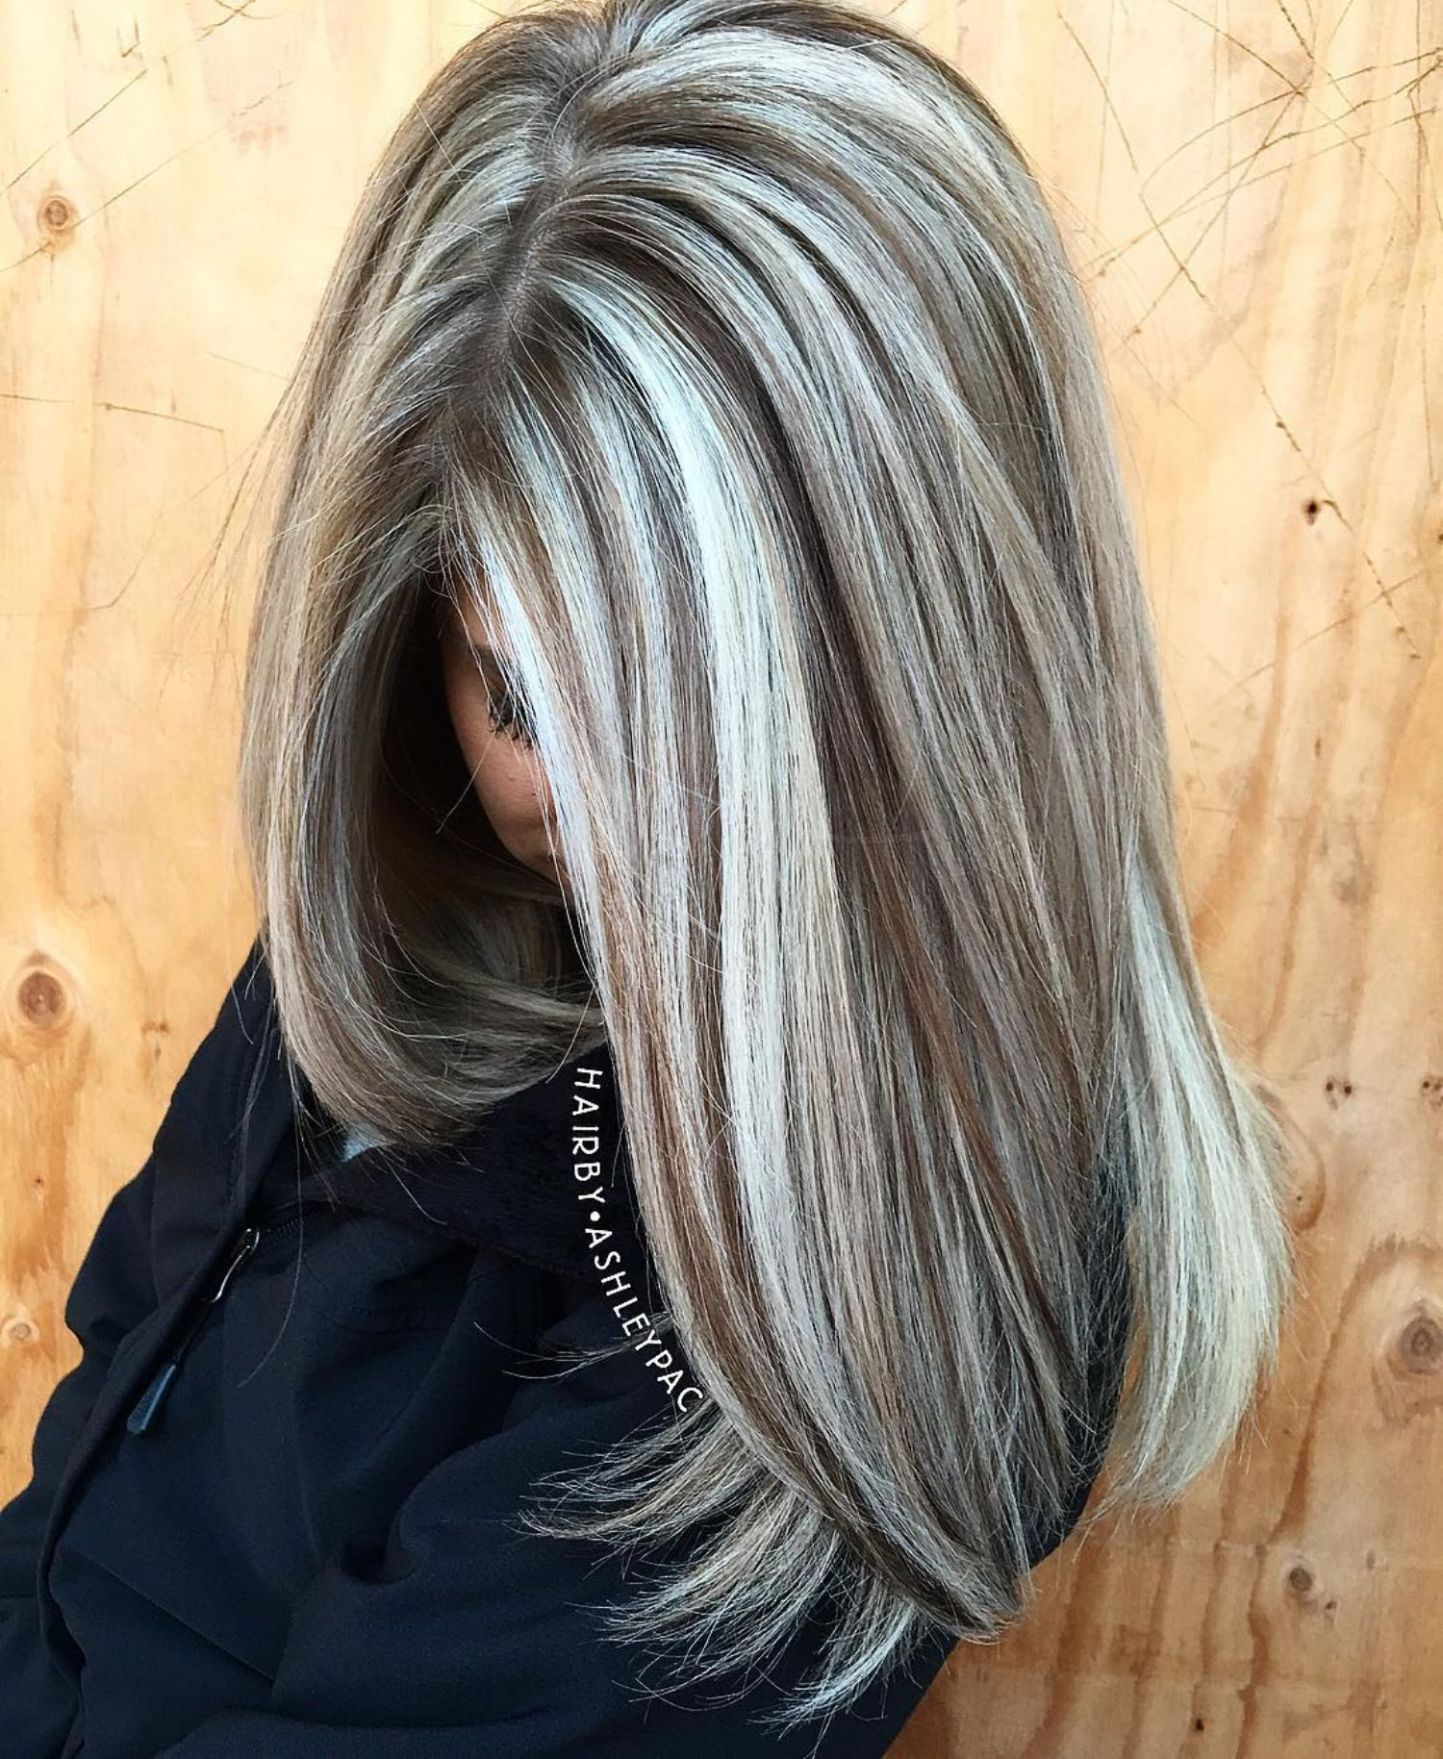 60 Shades Of Grey Silver And White Highlights For Eternal Youth Blonde Hair Looks Hair Highlights Silver Blonde